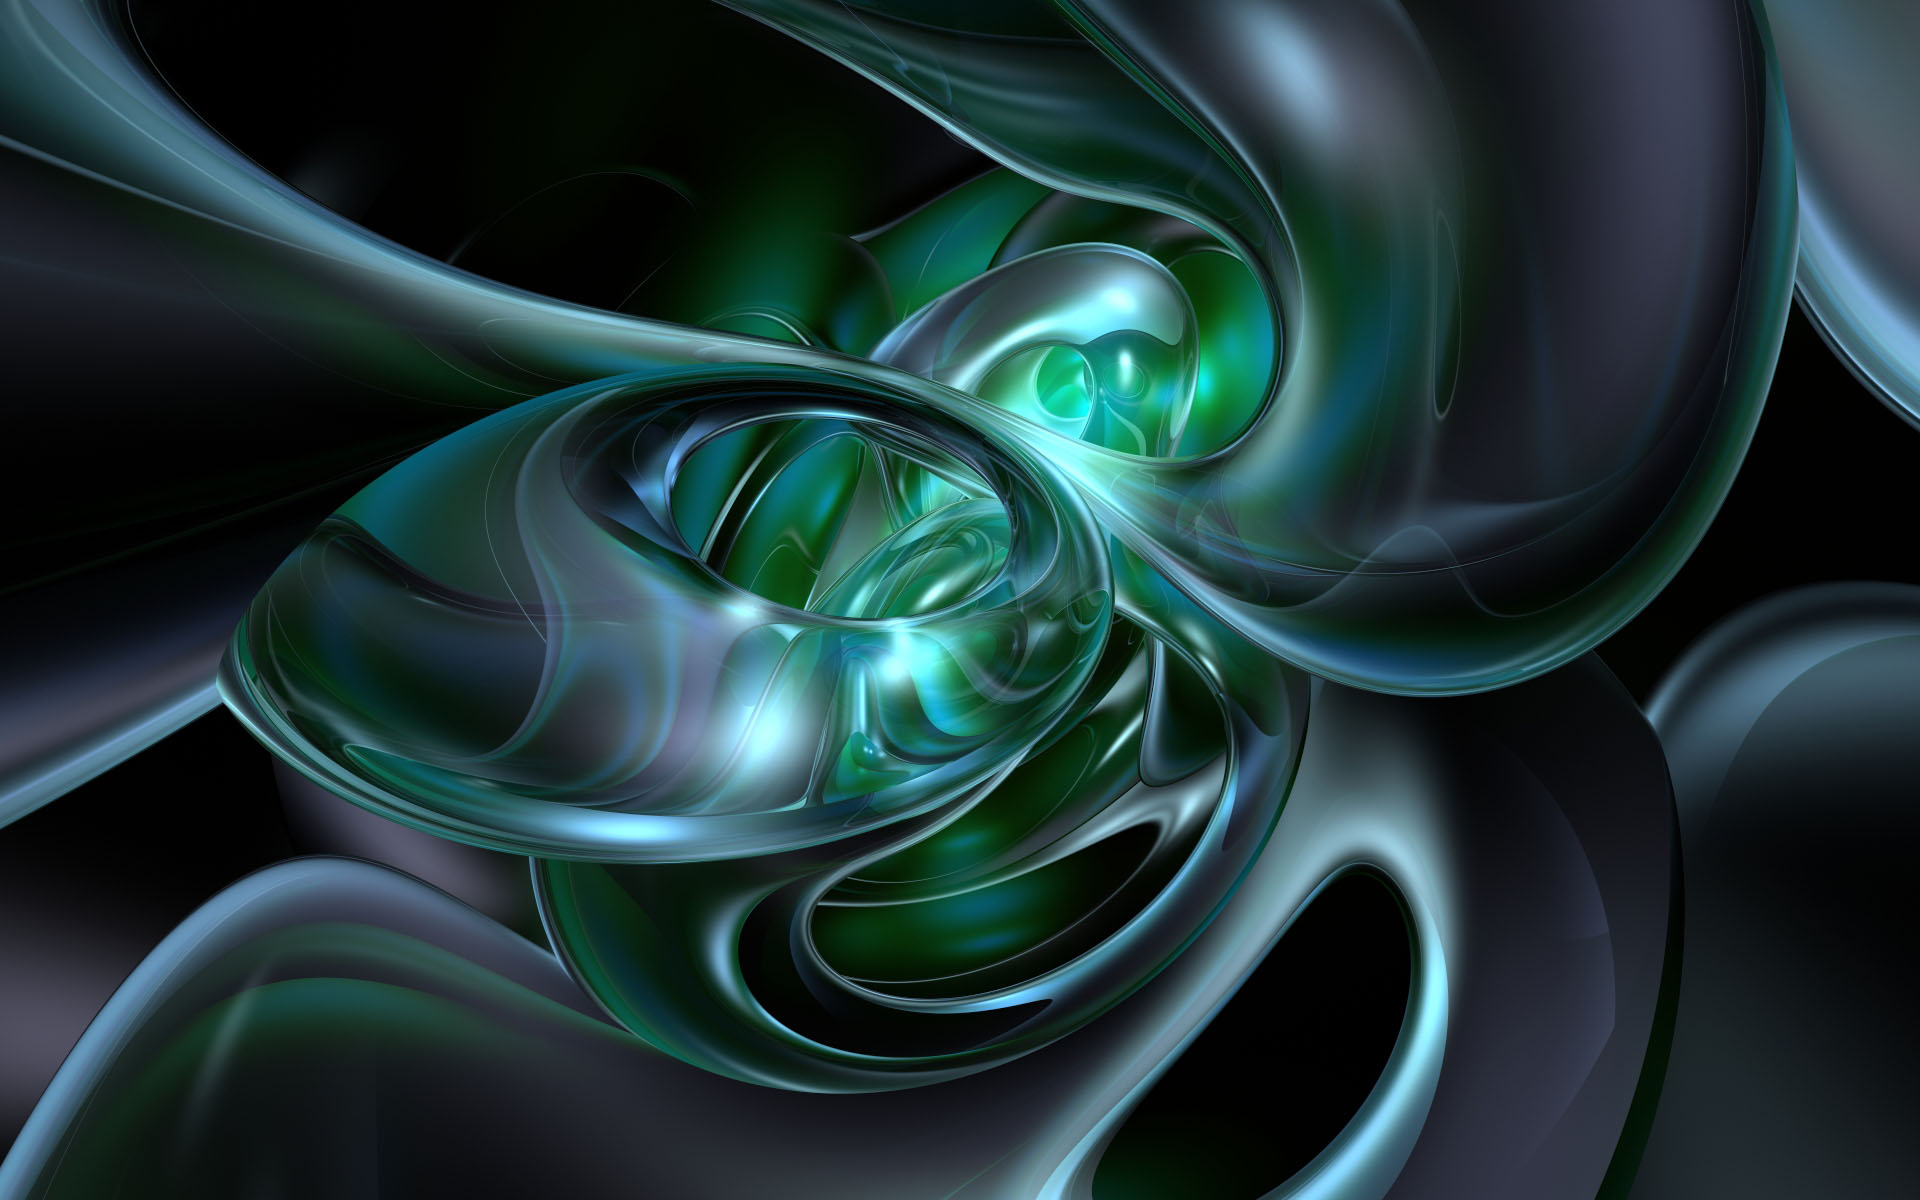 Abstract 3d Wallpapers and Backgrounds 1920x1200